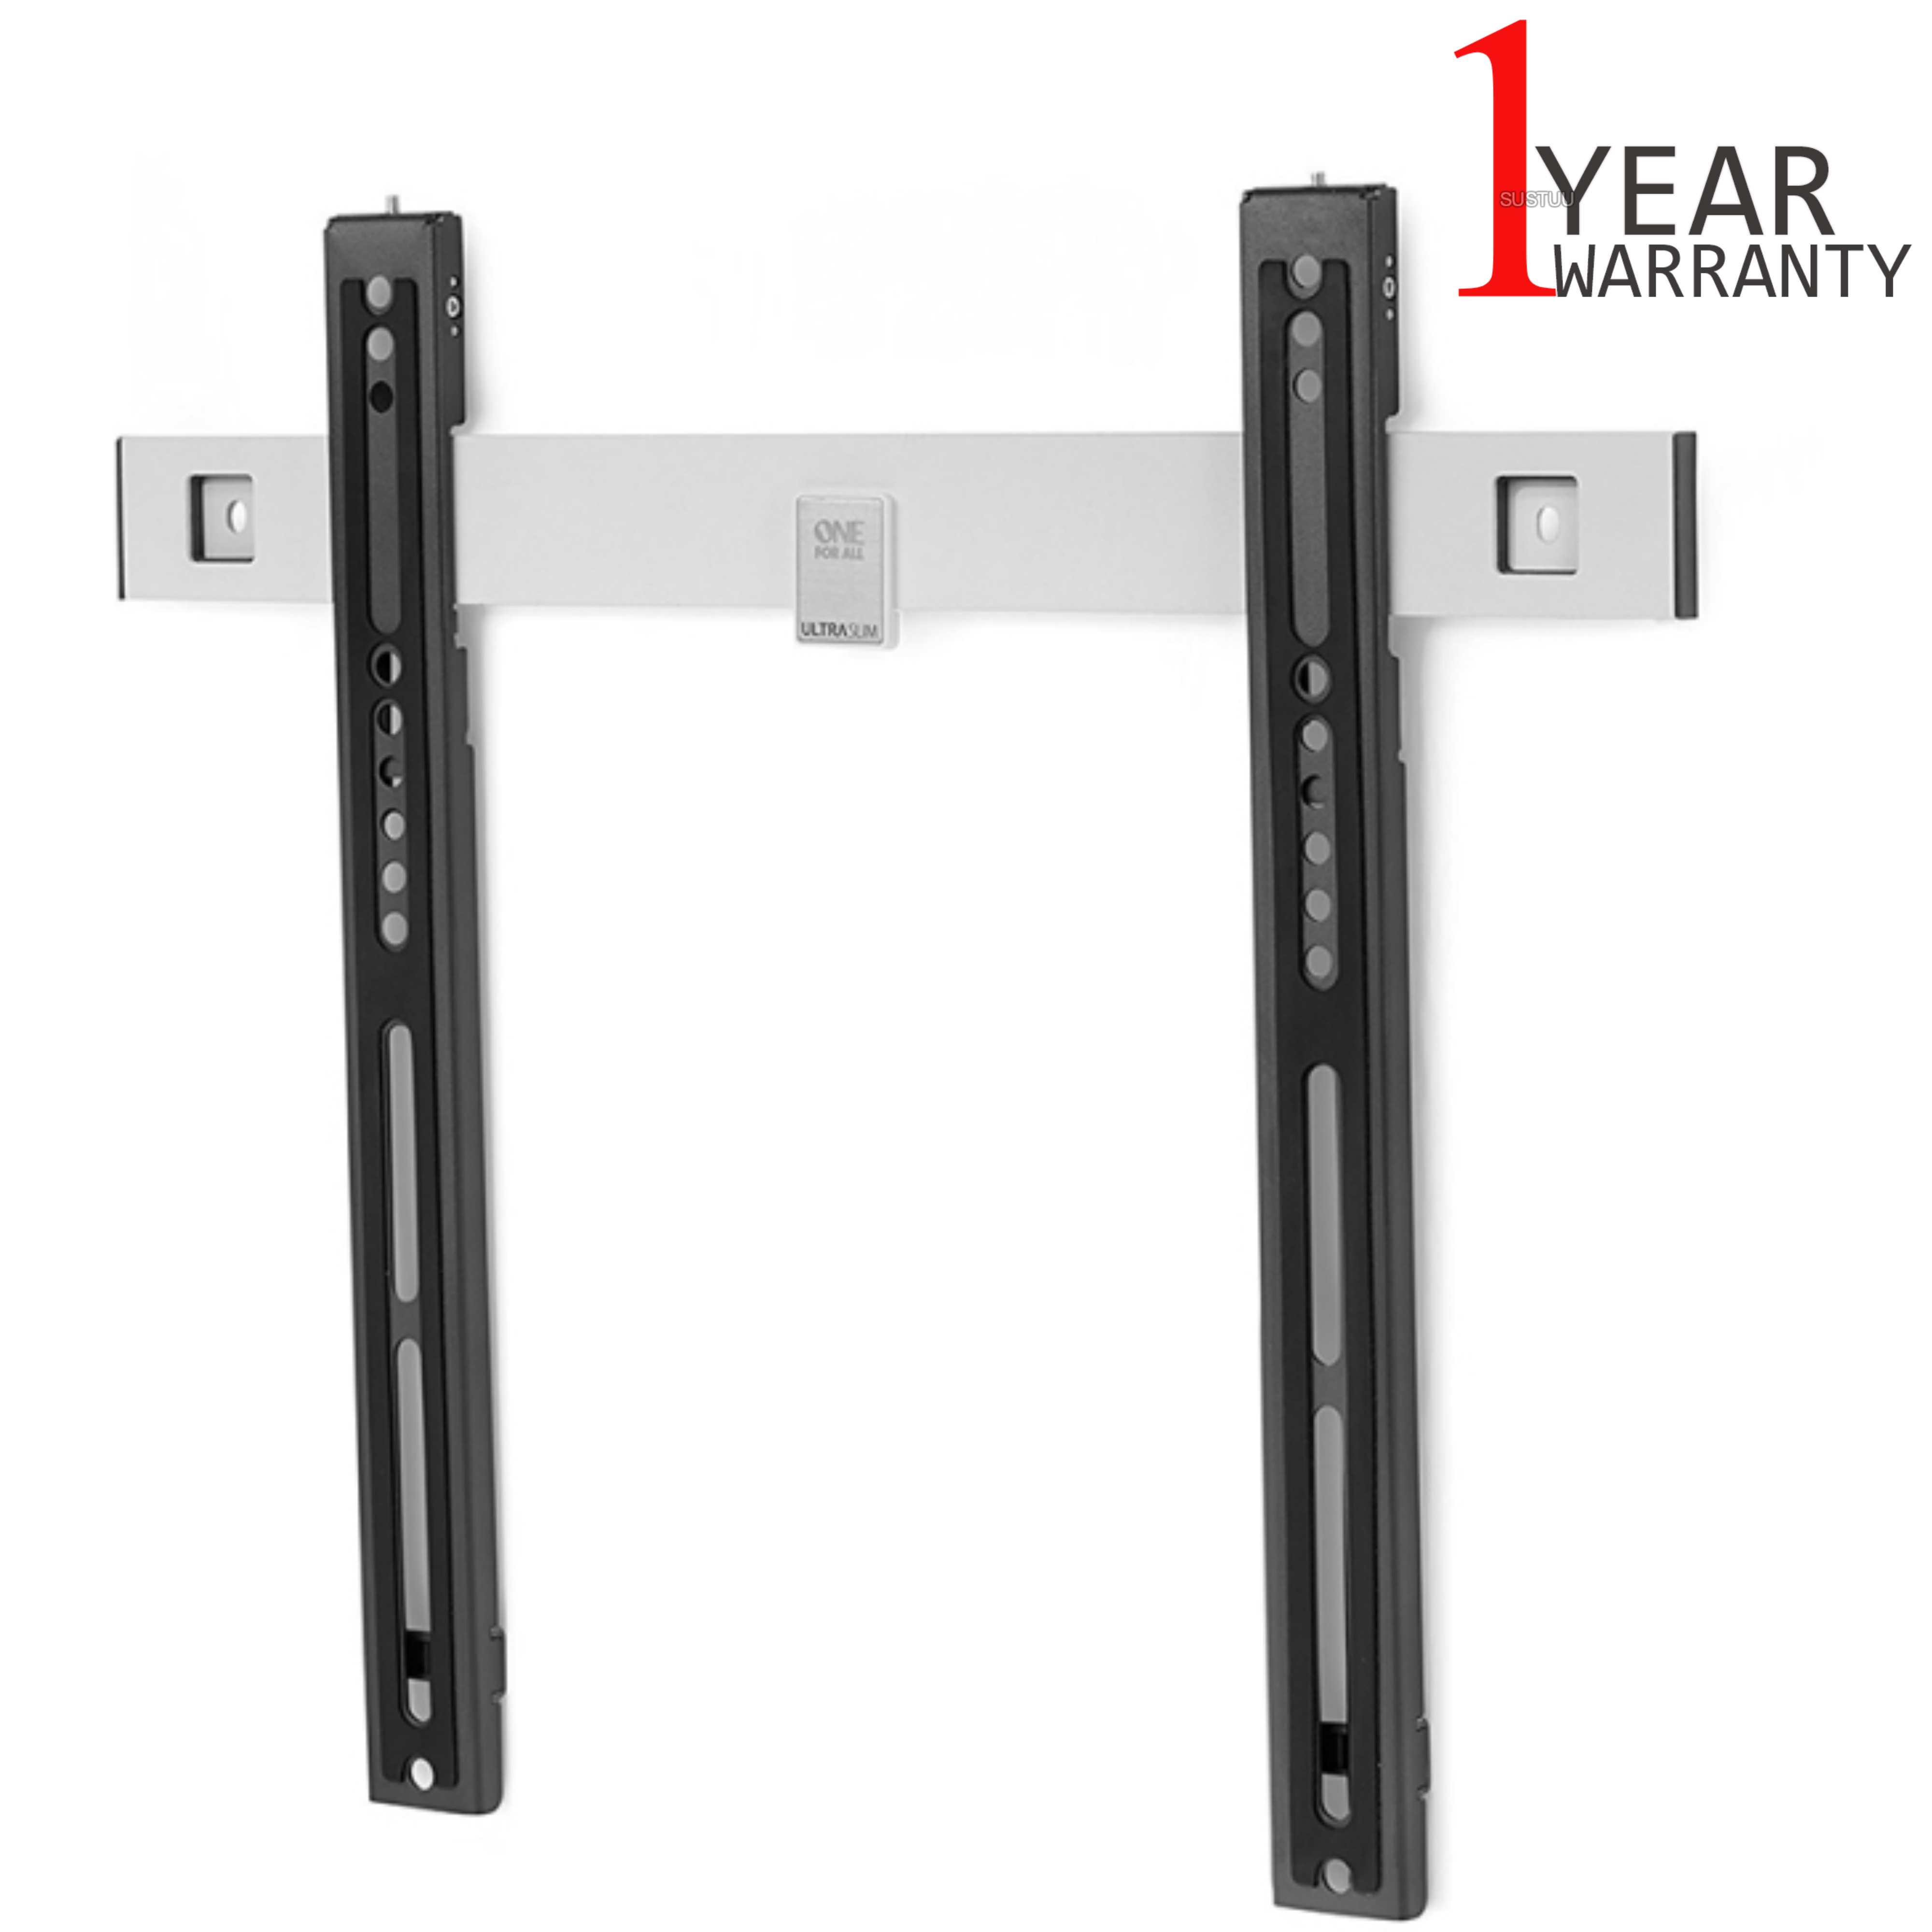 One For All WM6411 TV Bracket|Flat|Ultra Slim Series|32-60 inch|Auto Lock|New|